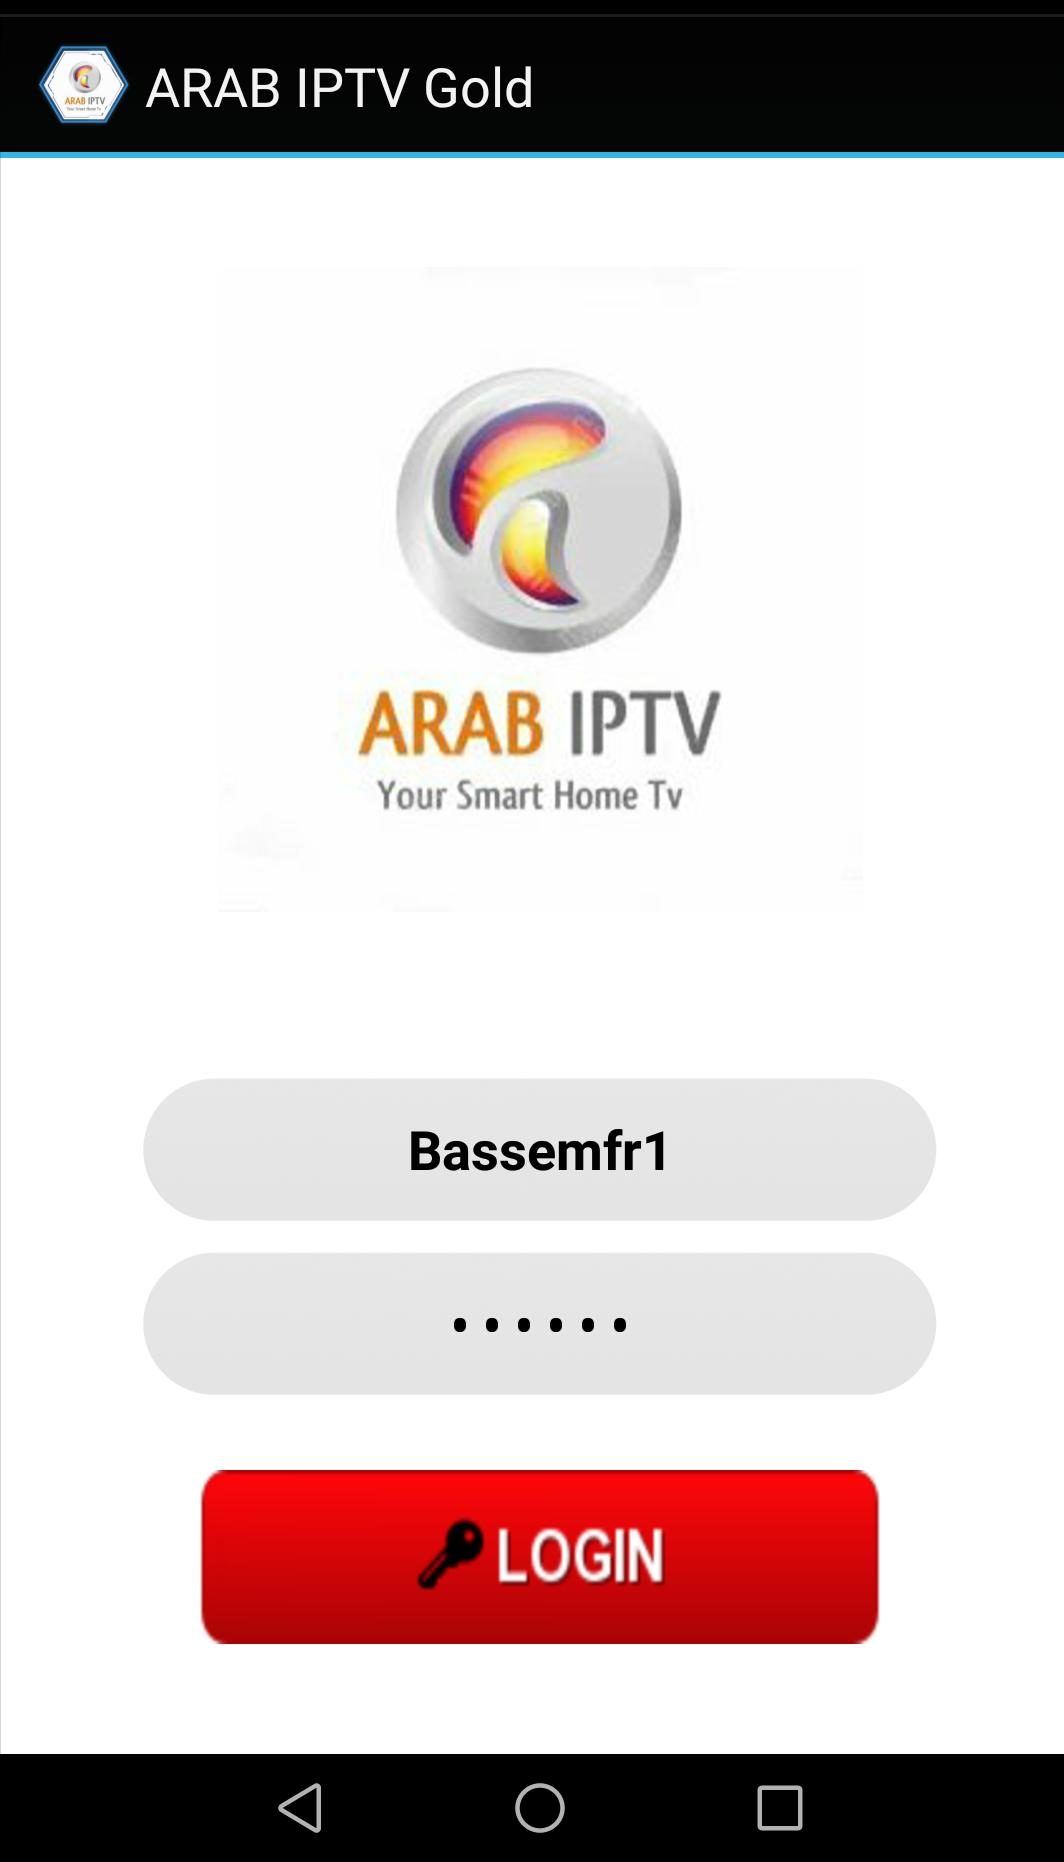 ARAB IPTV Gold for Android - APK Download